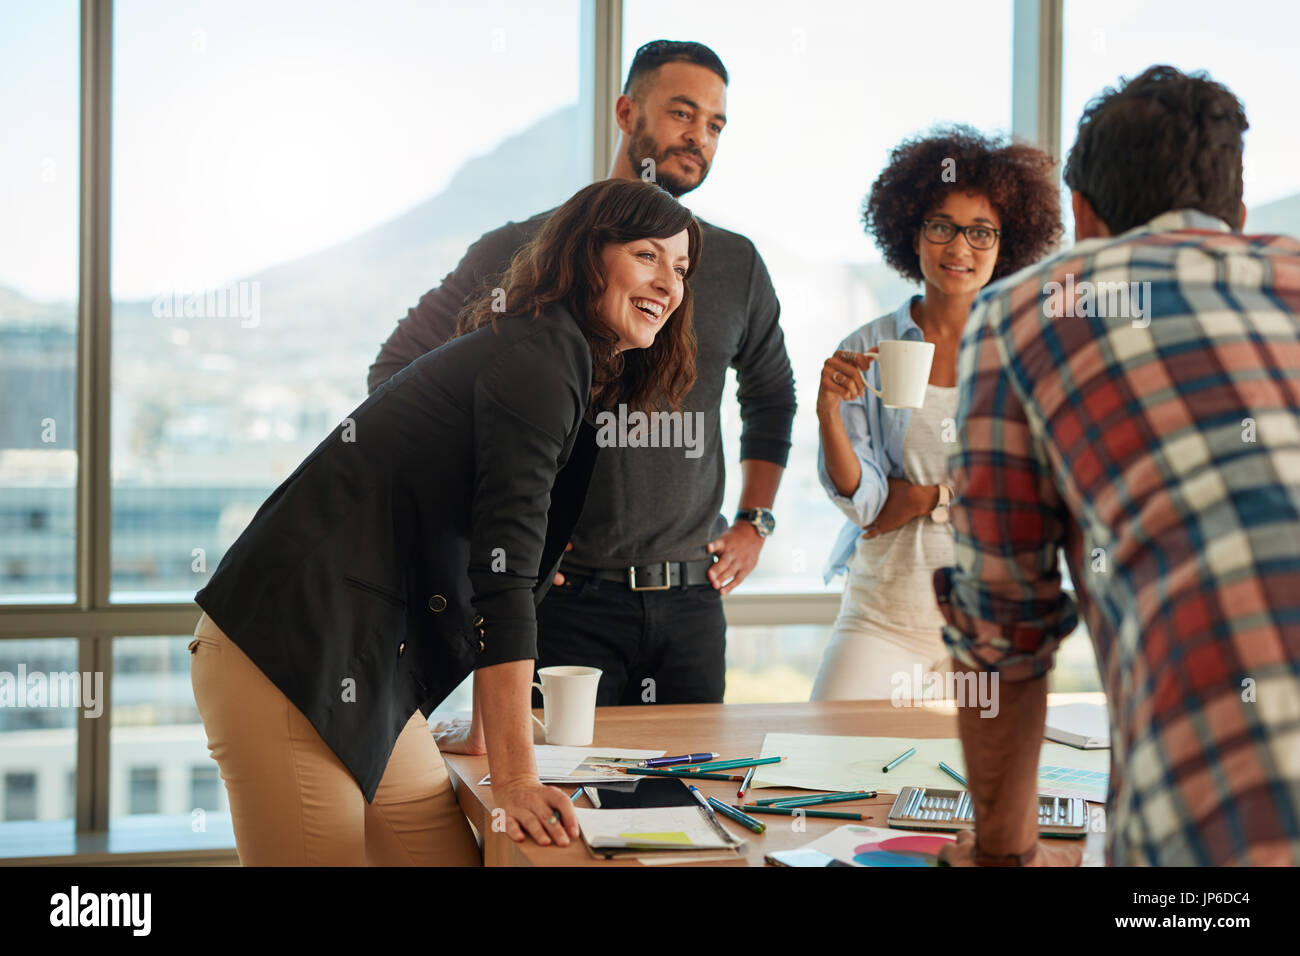 Young and creative team discussing ideas in board room. Group of multi ethnic people during business meeting. - Stock Image